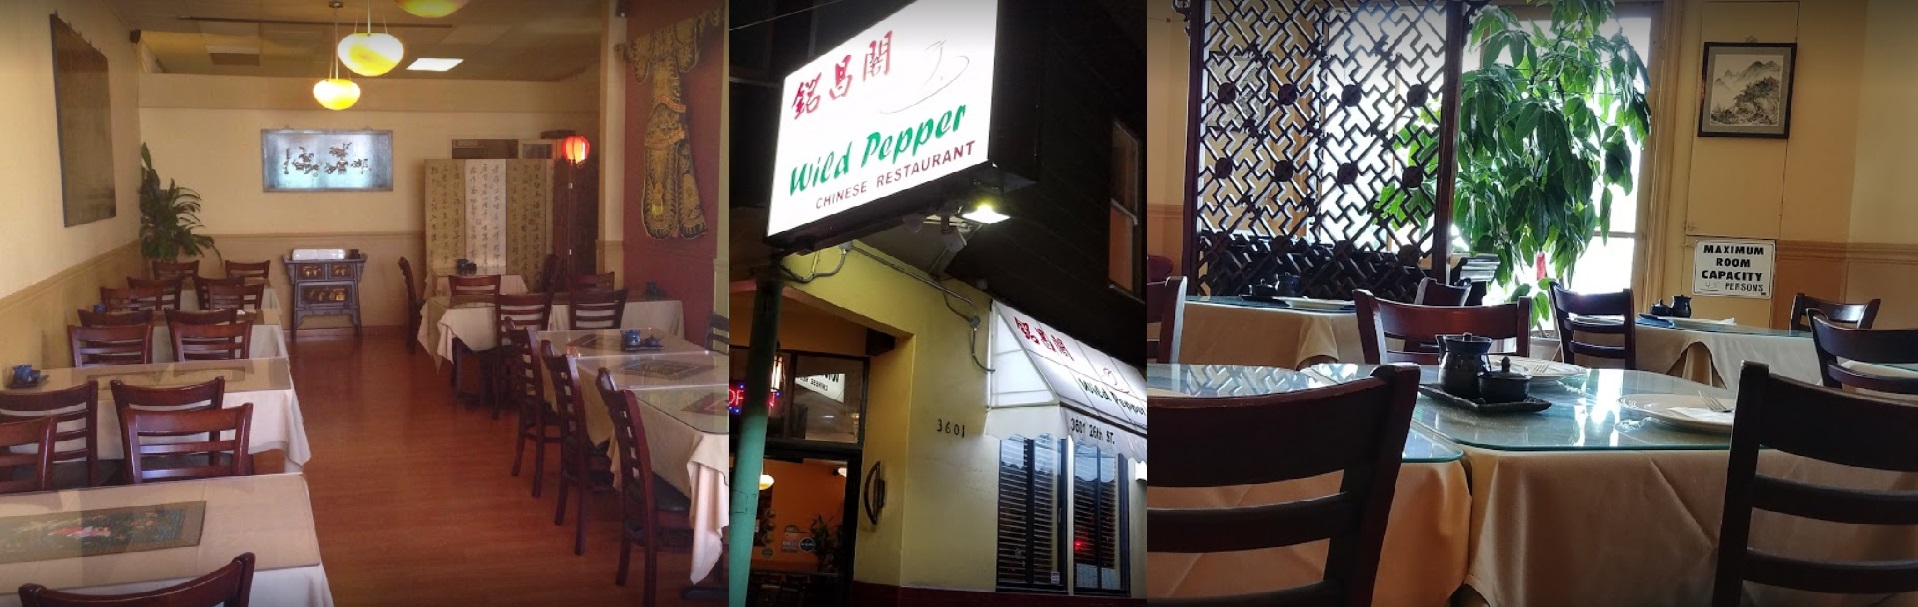 Your favorite Chinese food at Wild Pepper